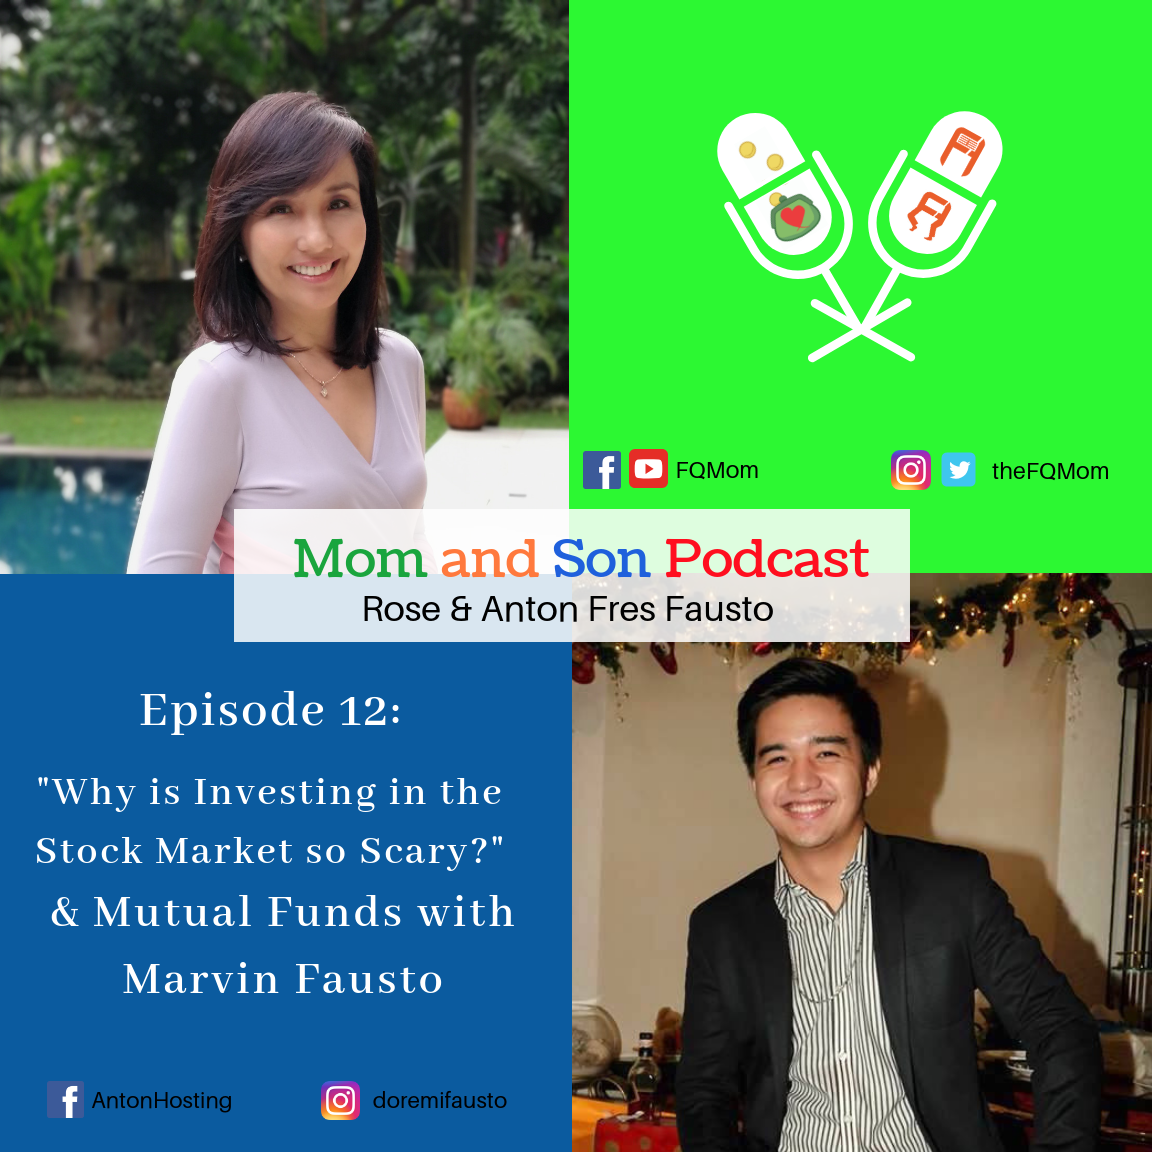 mom-and-son-podcast-2-2